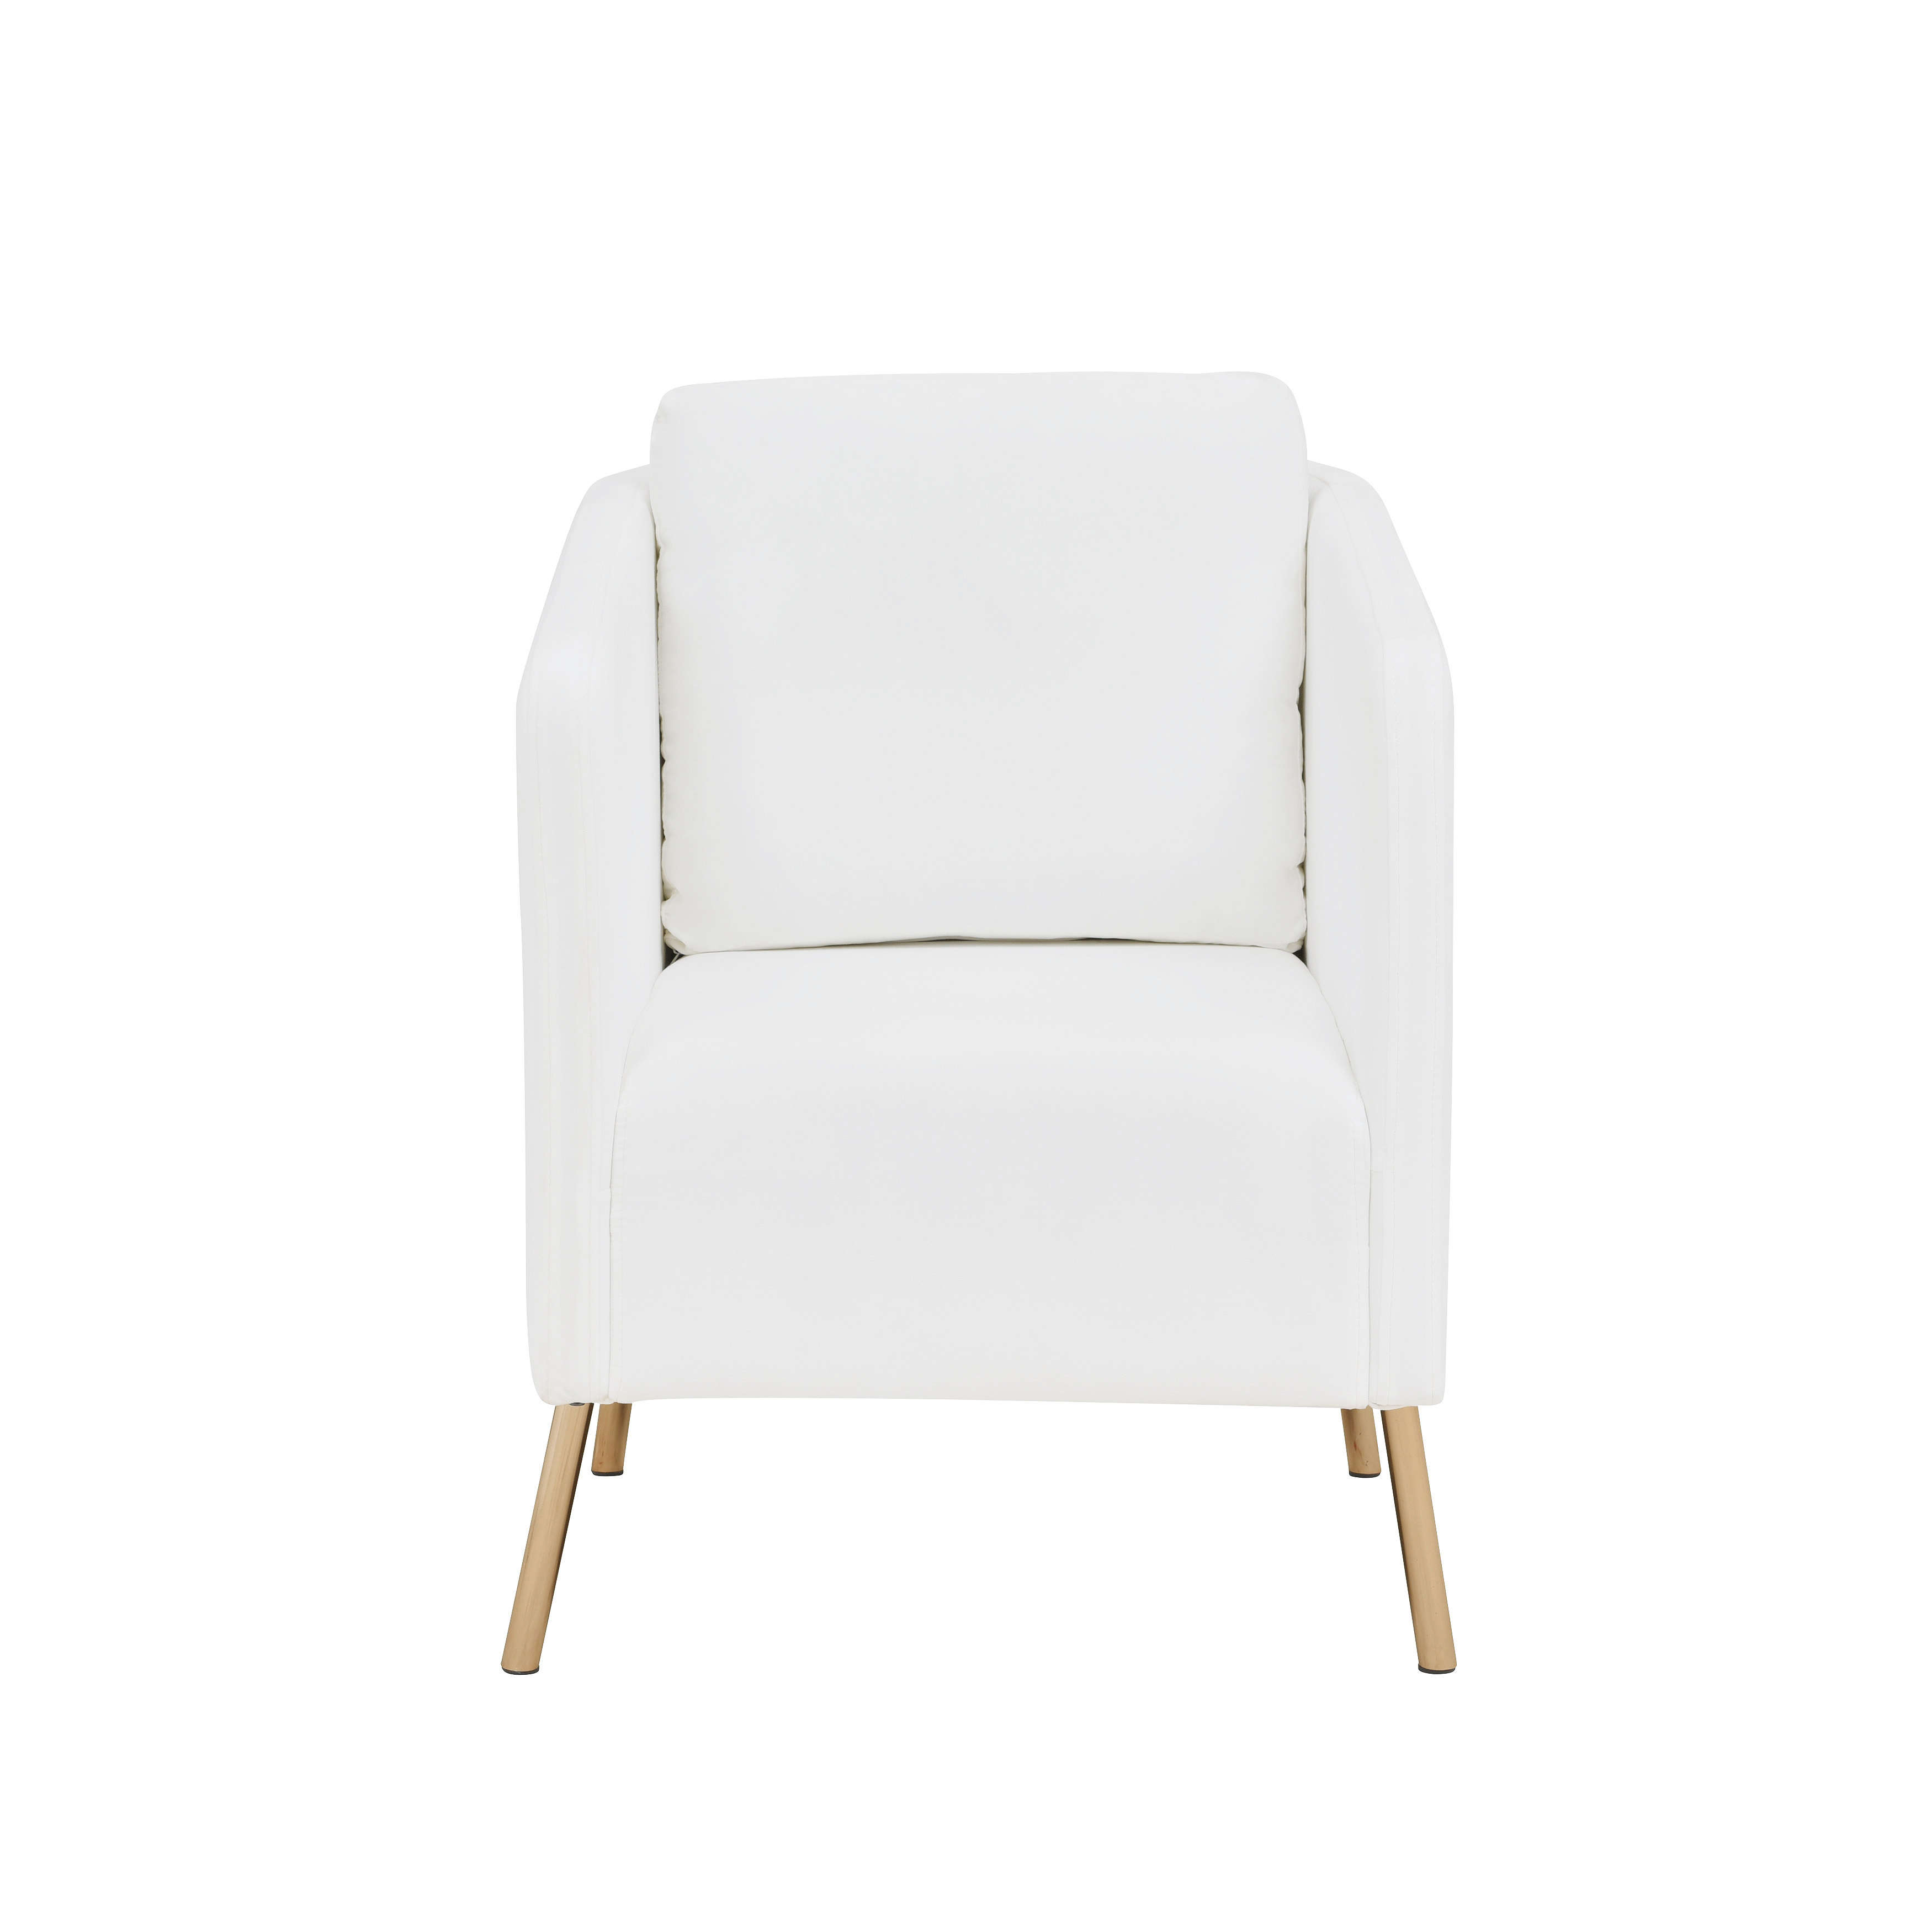 Mainstays Velvet Look Arm Chair With Gold Legs, Multiple Colors